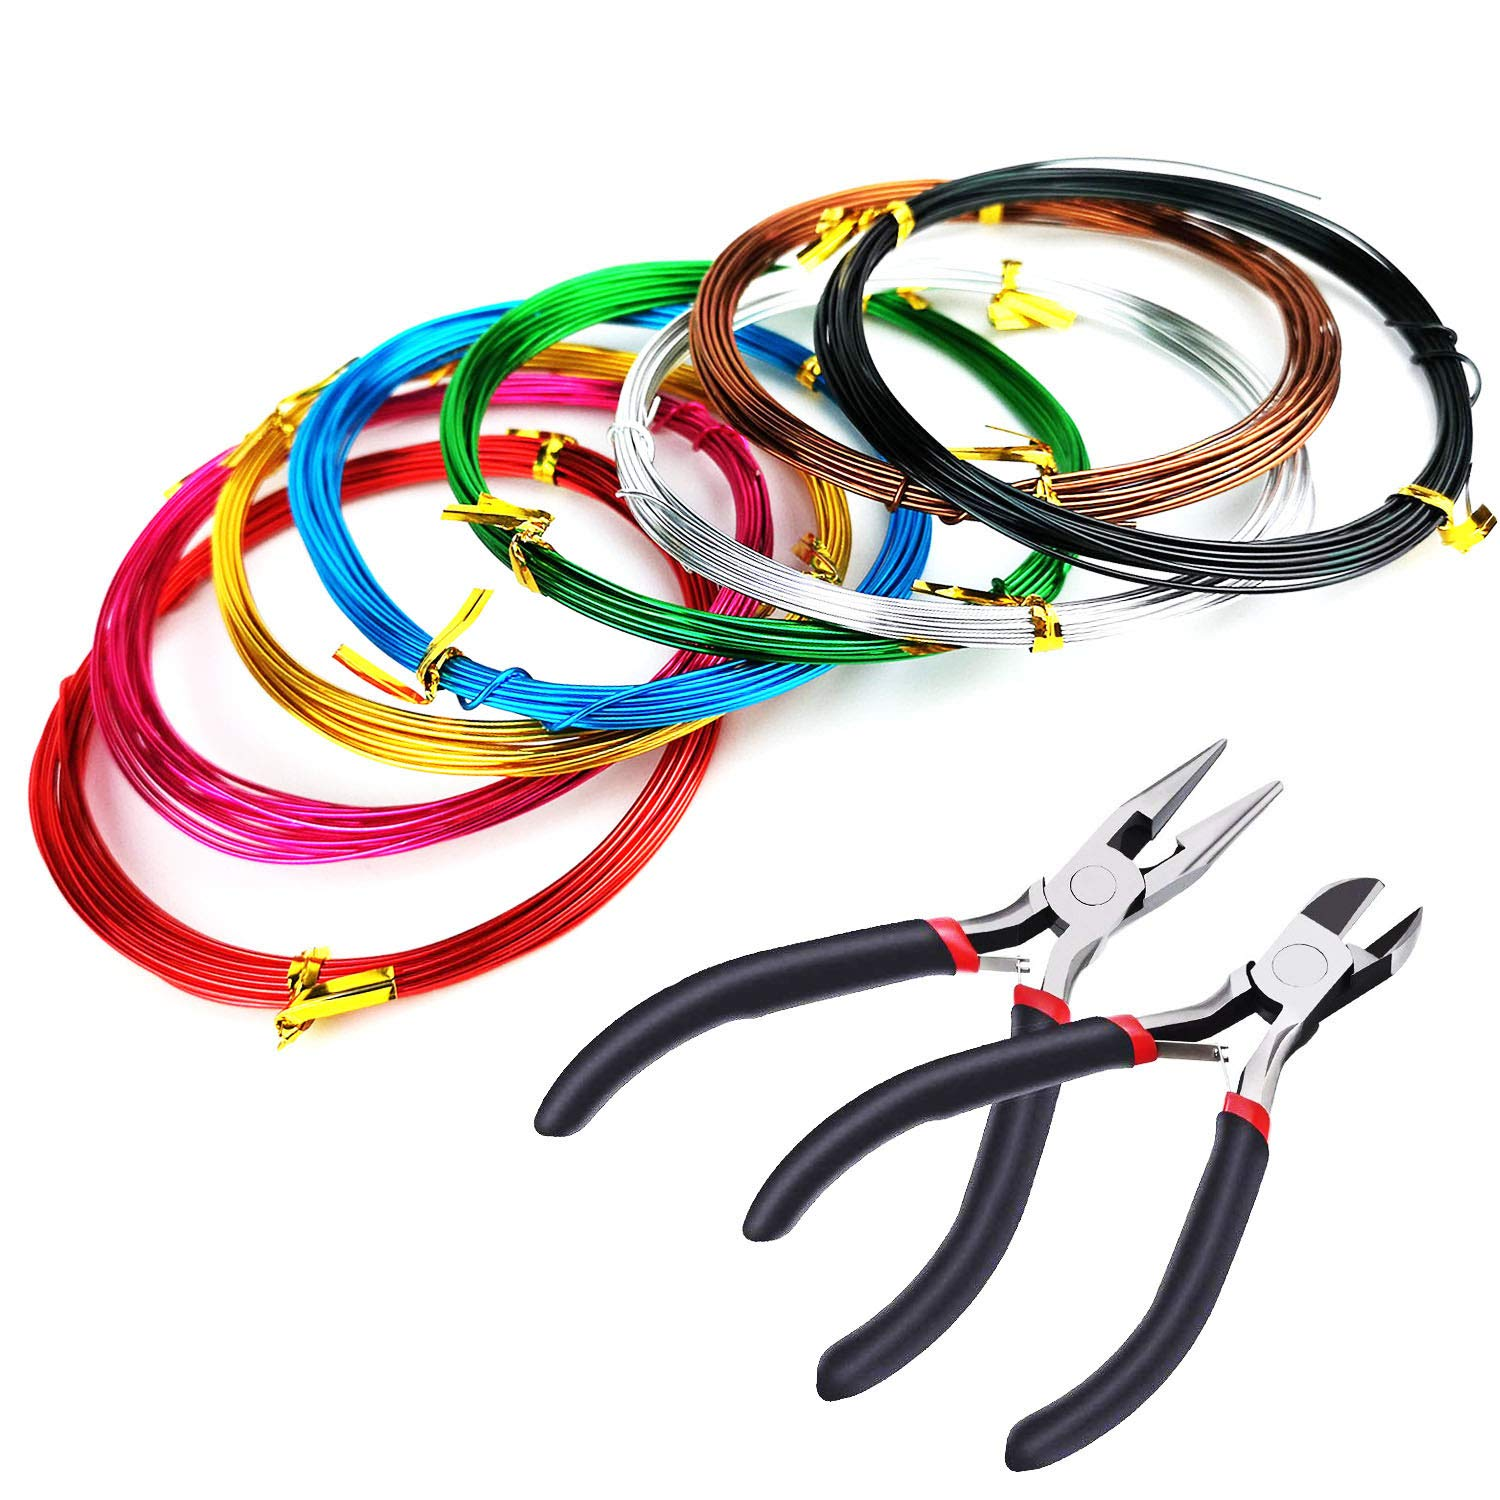 8 Rolls Multi-Colored Aluminum Craft Wire, Flexible Artistic Floral Jewelry Beading Wire for DIY Jewelry Craft Making, 1.0mm*5m + 2Pcs Cutter Pliers YunLi